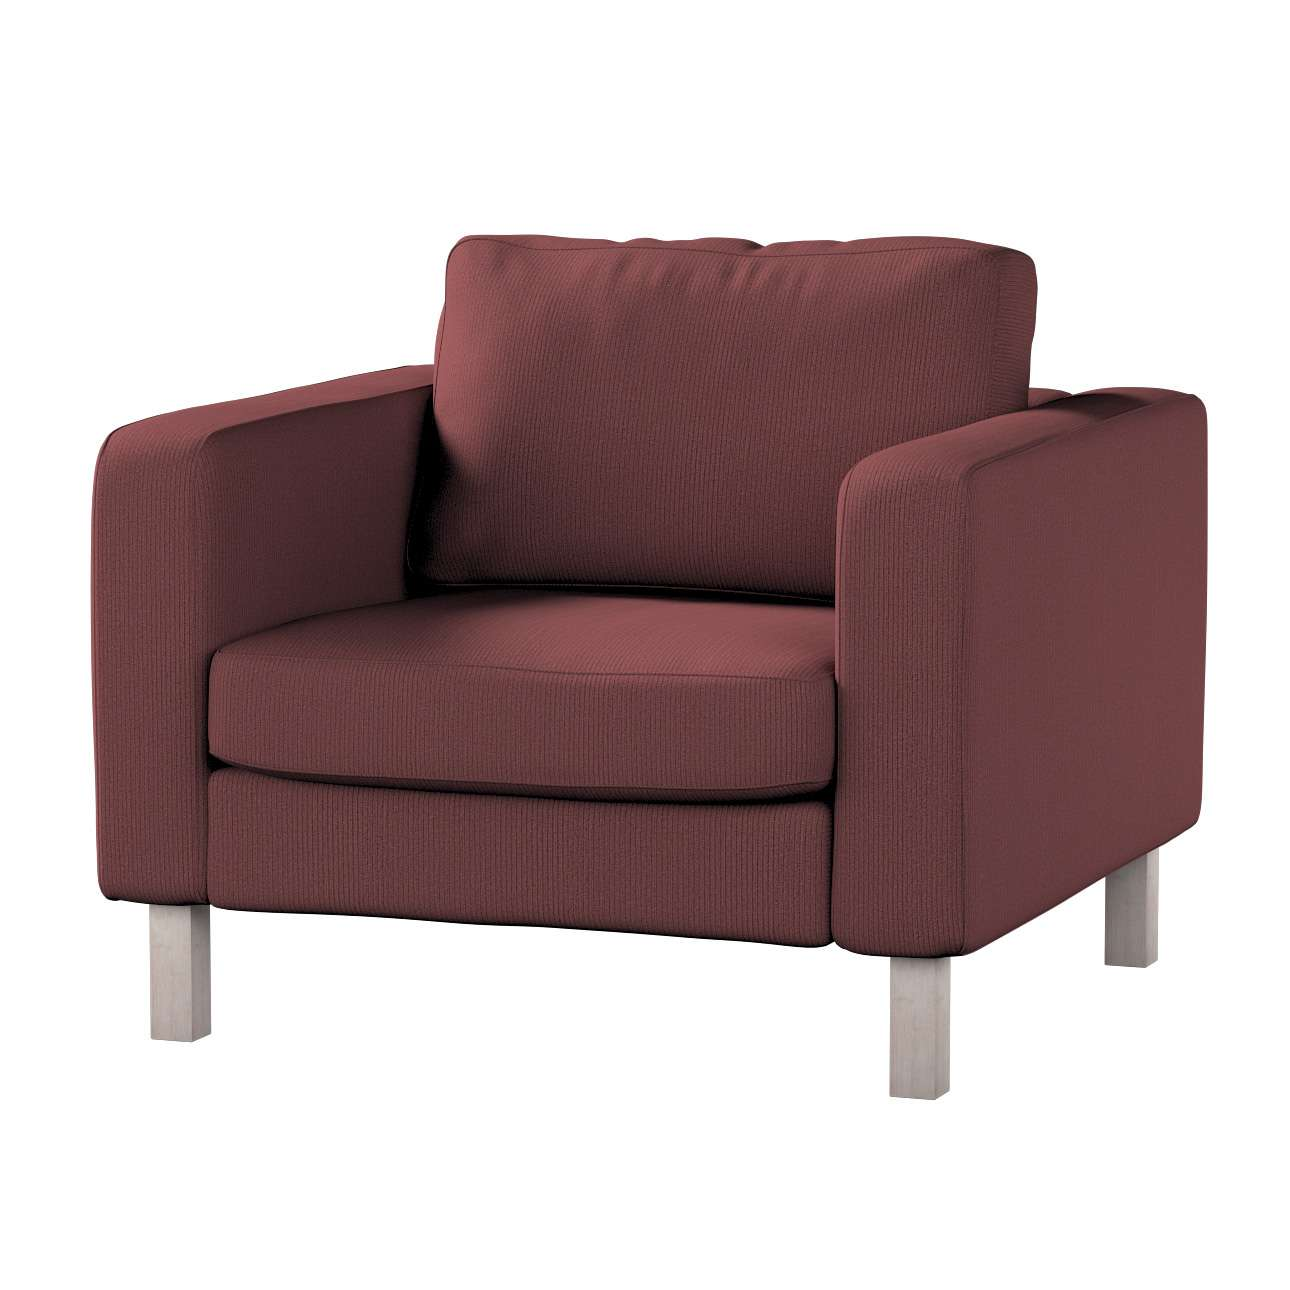 Karlstad armchair cover Karlstad armchair cover in collection Living, fabric: 103-56